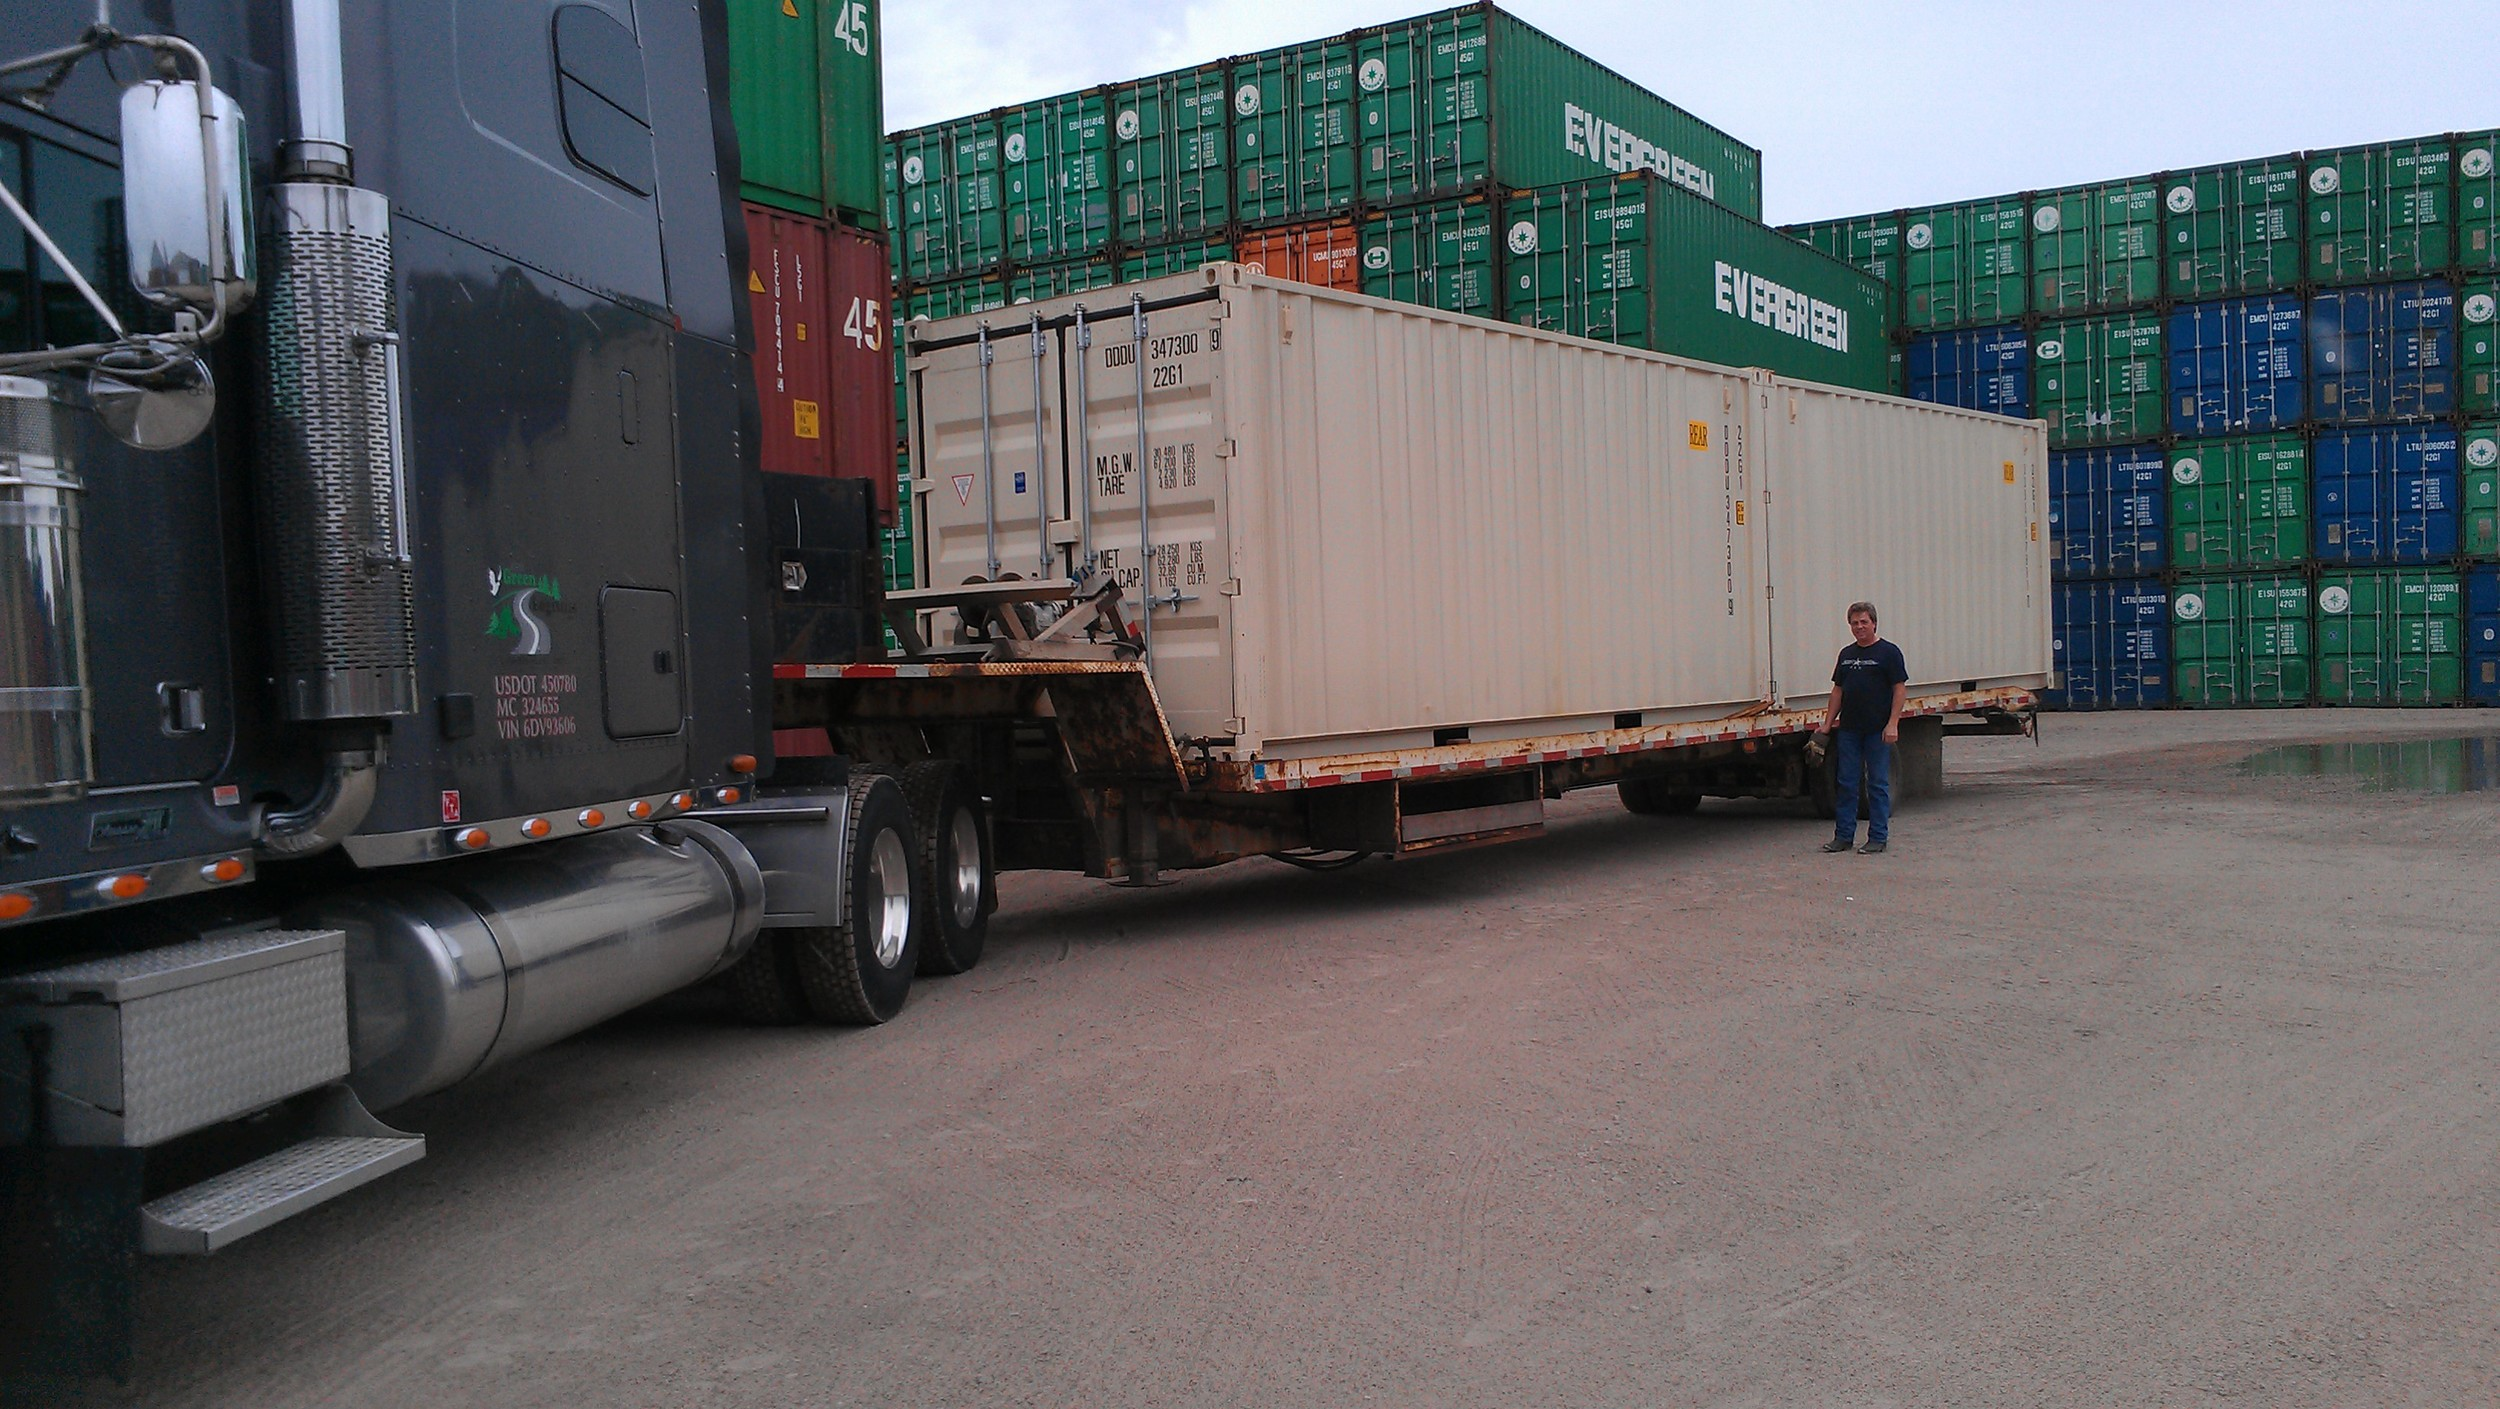 Here are two one-trip 20' containers loaded on a tiltbed truck, all ready to be delivered.